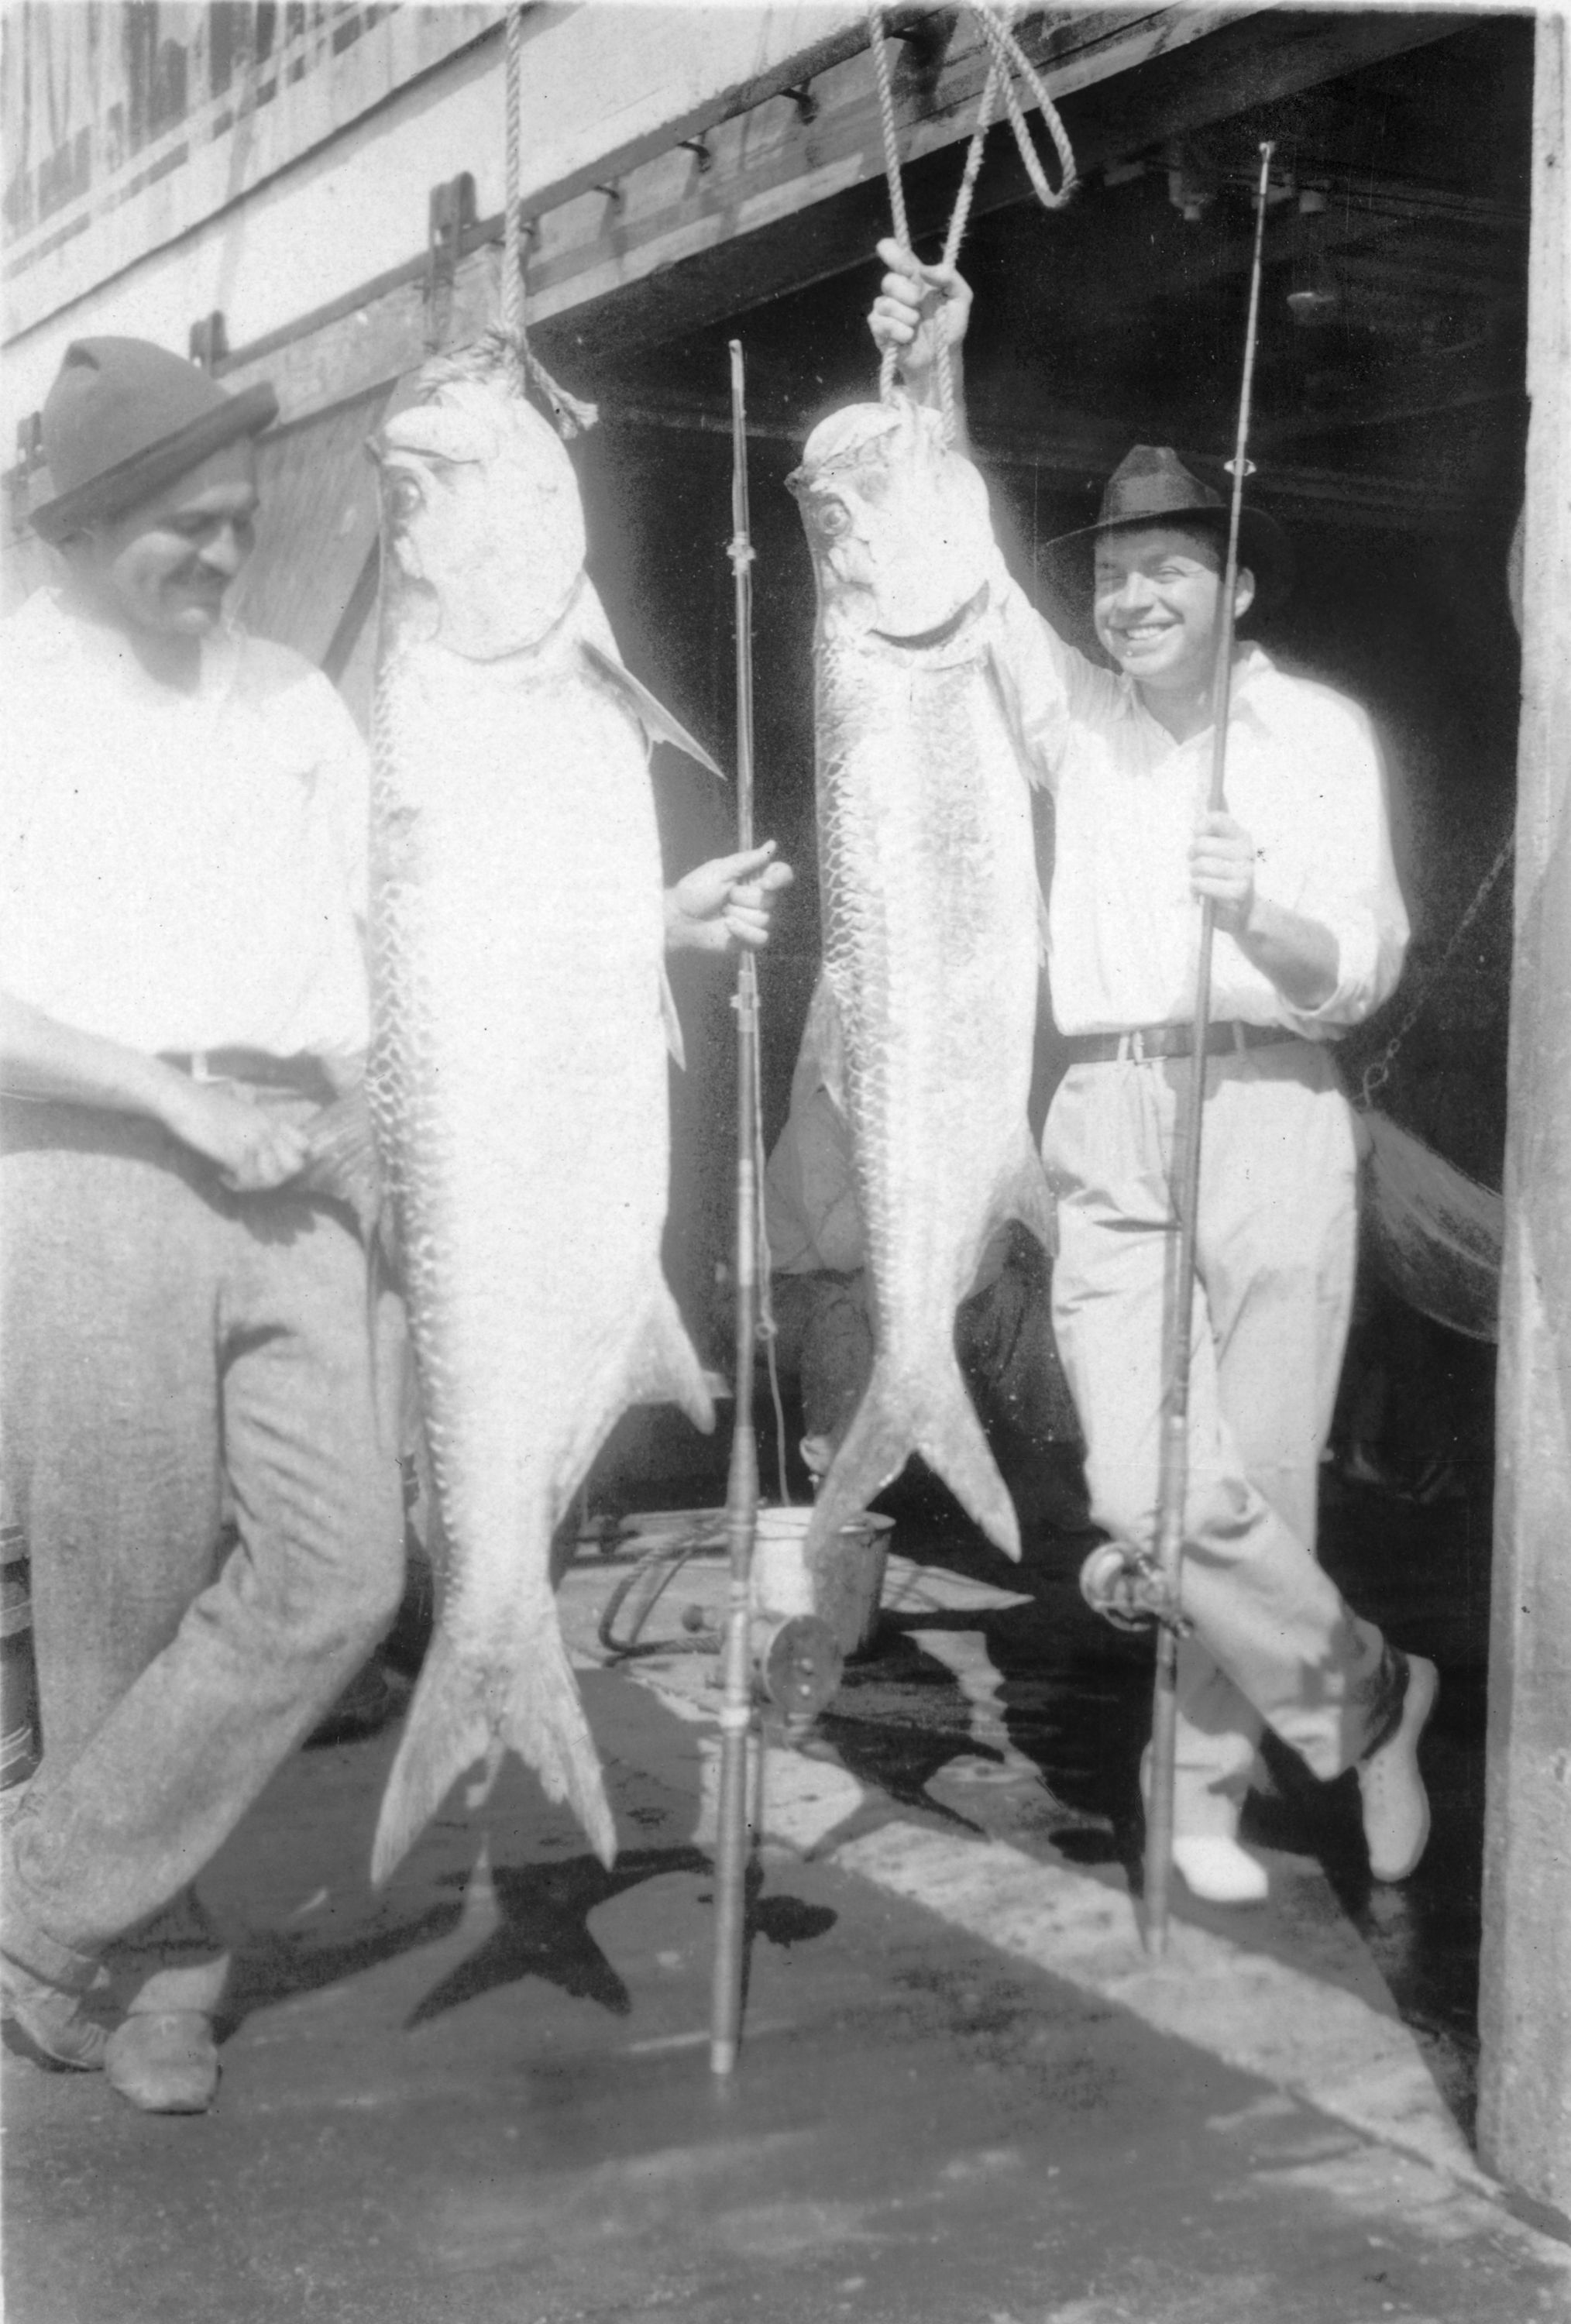 Ernest Hemingway and John Dos Passos pose with two tarpon fish, Key West, 1928.